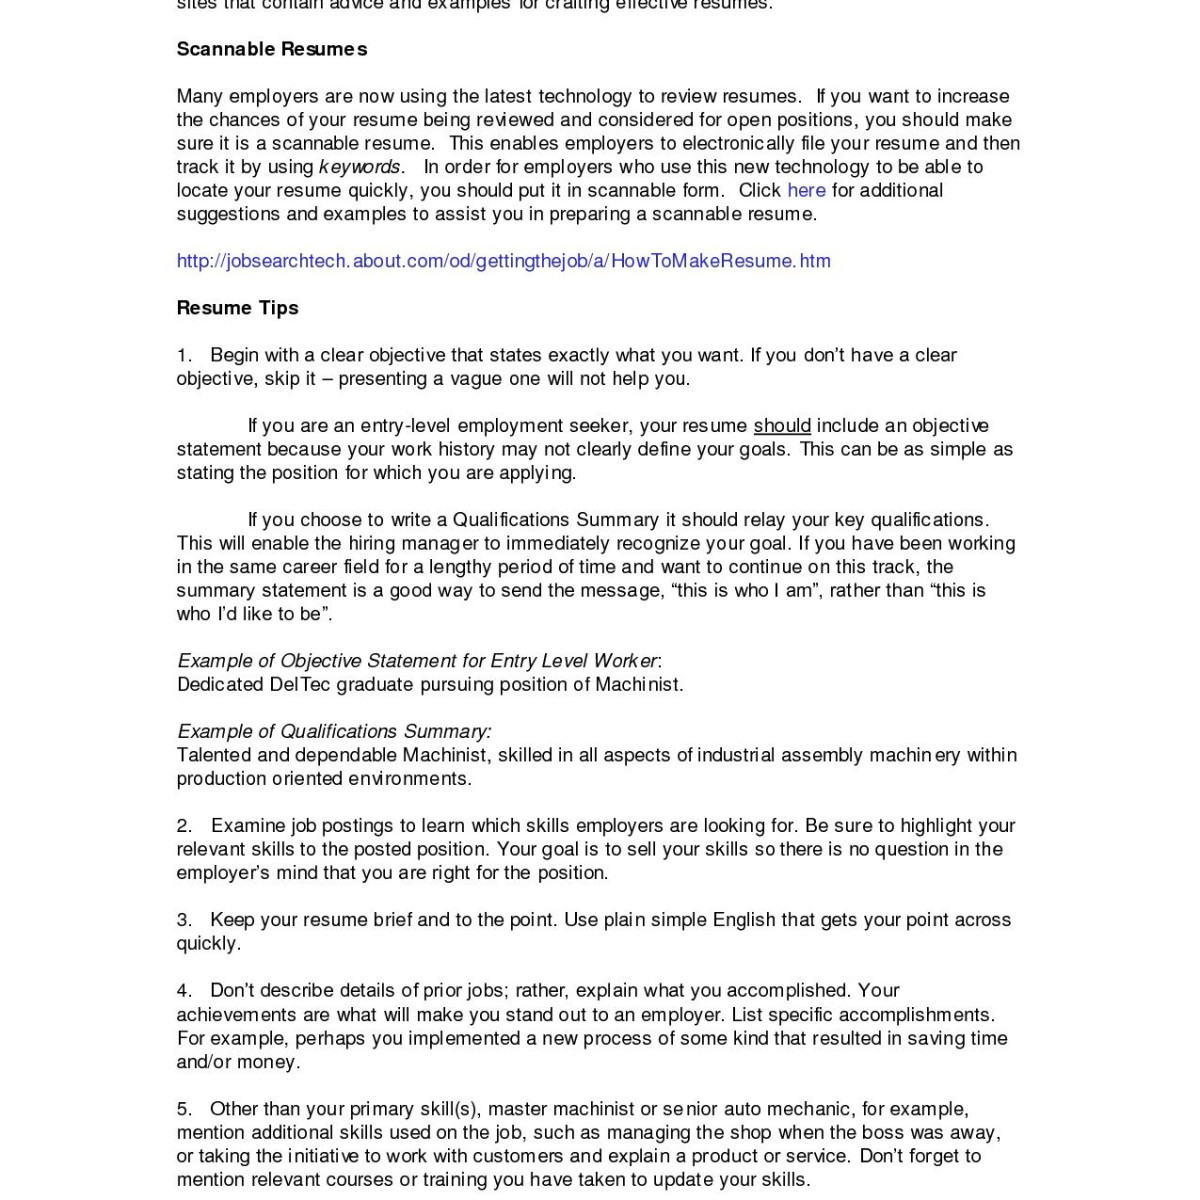 Resume Templates that Stand Out - 31 Luxury How to Make Your High School Resume Stand Out W1b